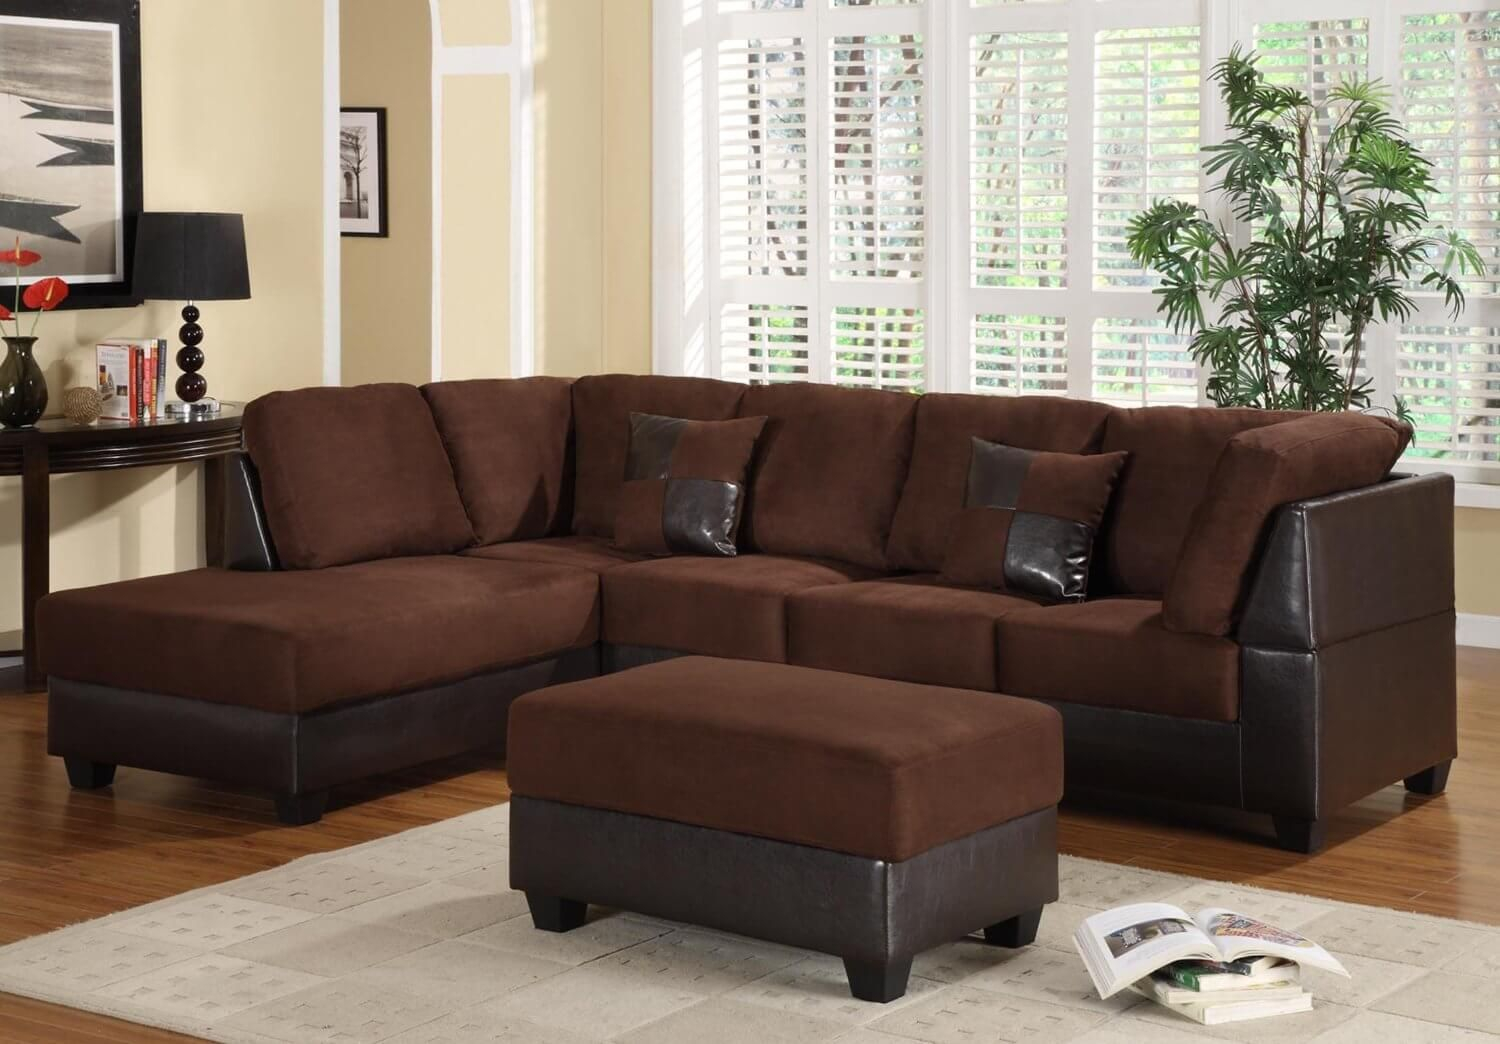 Sofa And Loveseat Sets Under 500 13 Sectional Sofas Under In throughout sizing 1500 X 1044